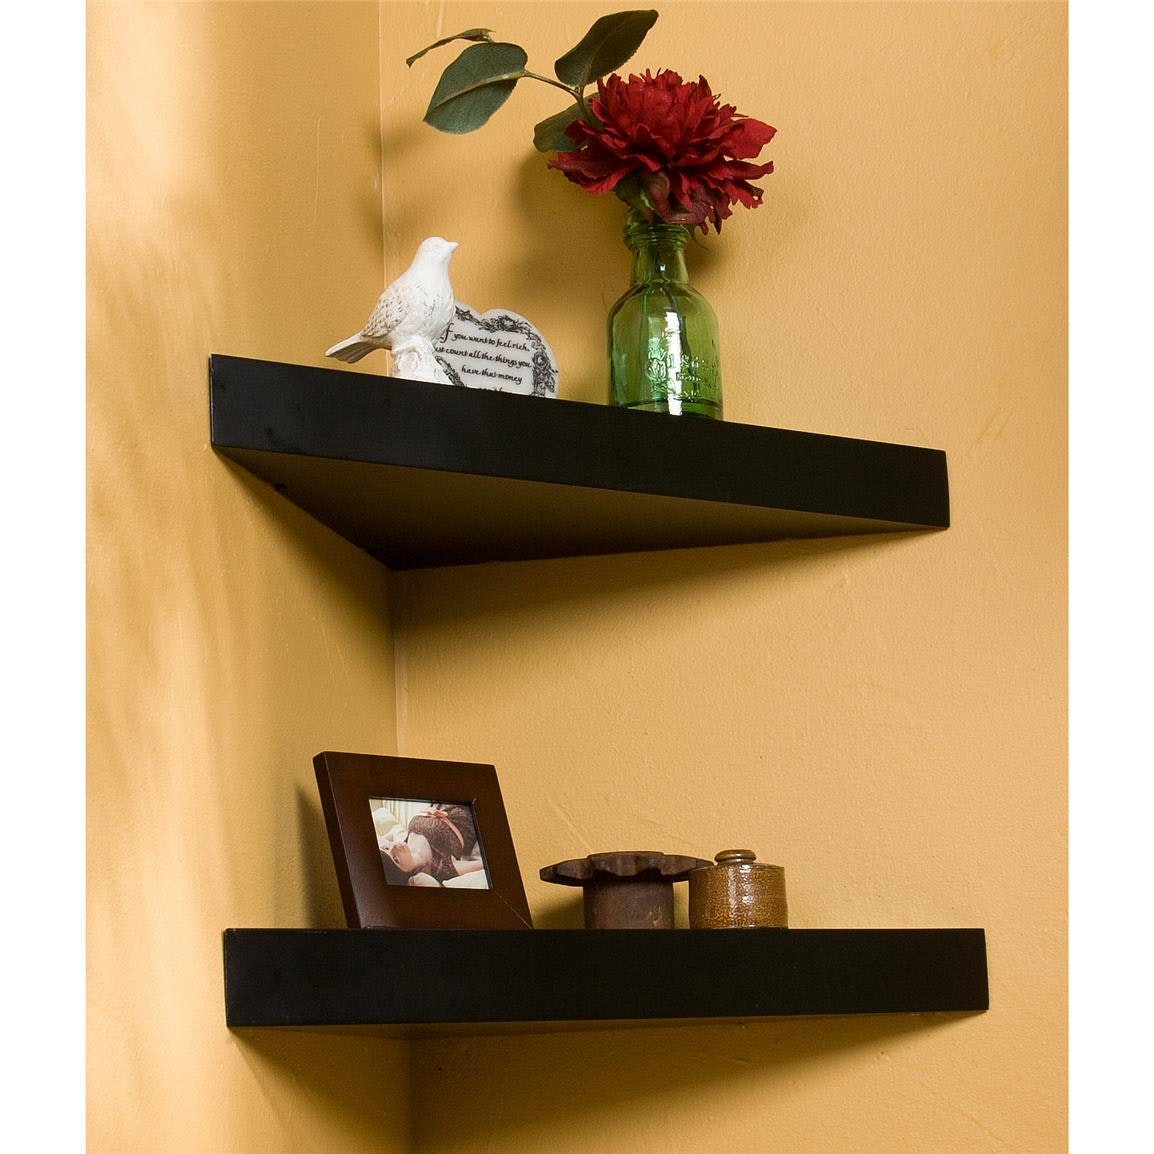 shelves black gloss floating white high homebase morespoons drawer shelf from build stackable wood box shelving vonhaus wall bracket hanging bath vanity mounted closet rack